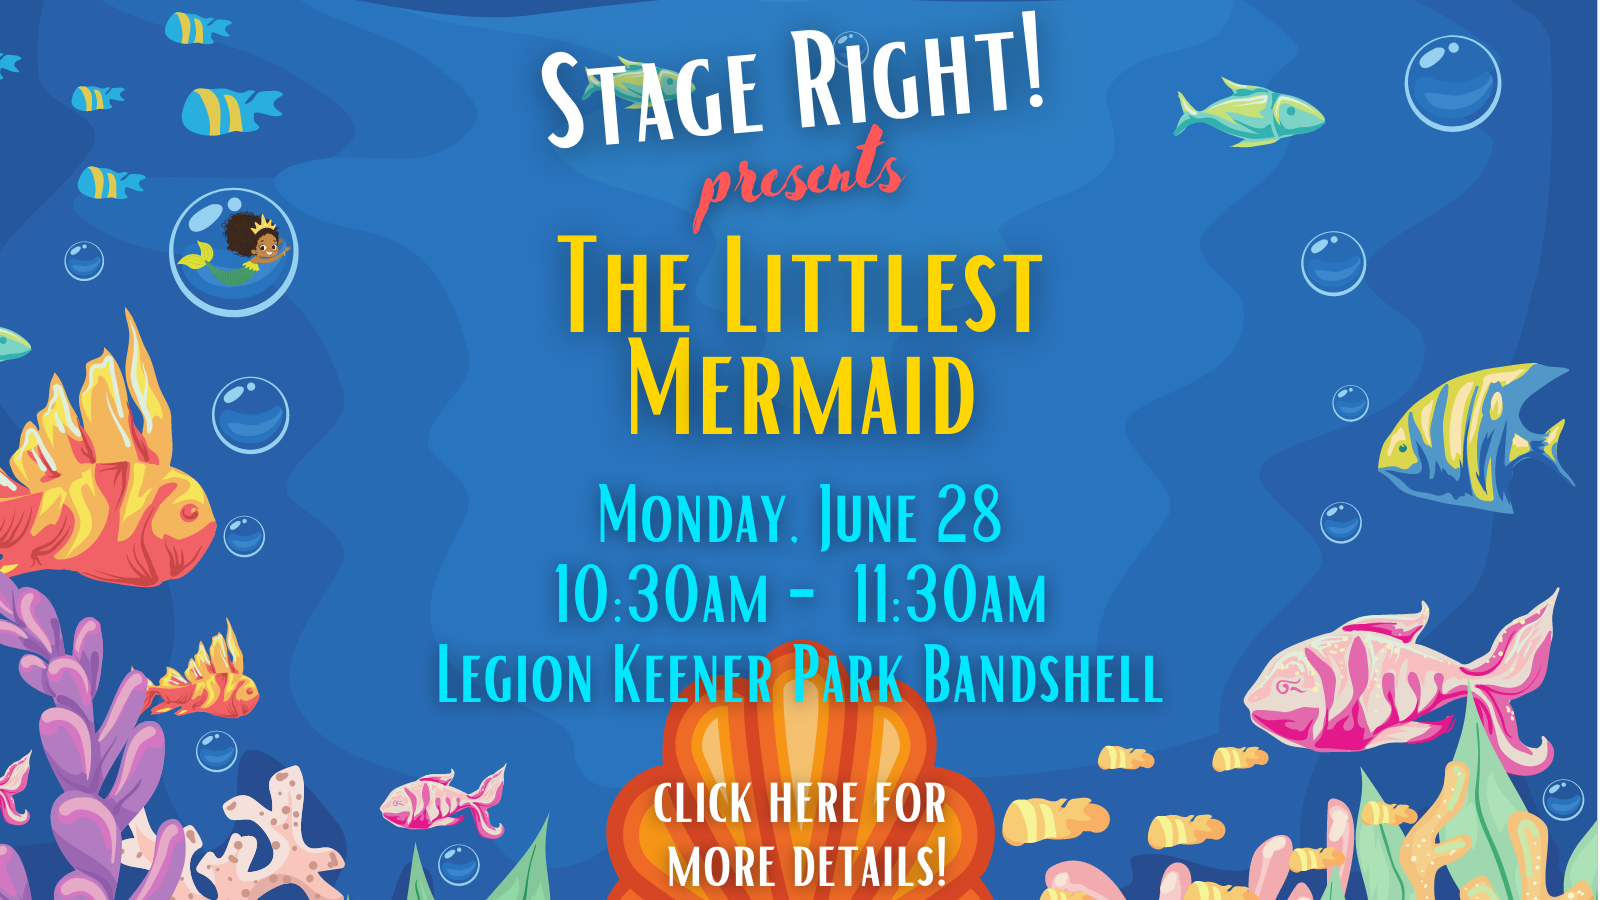 Stage Right The Littlest Mermaid